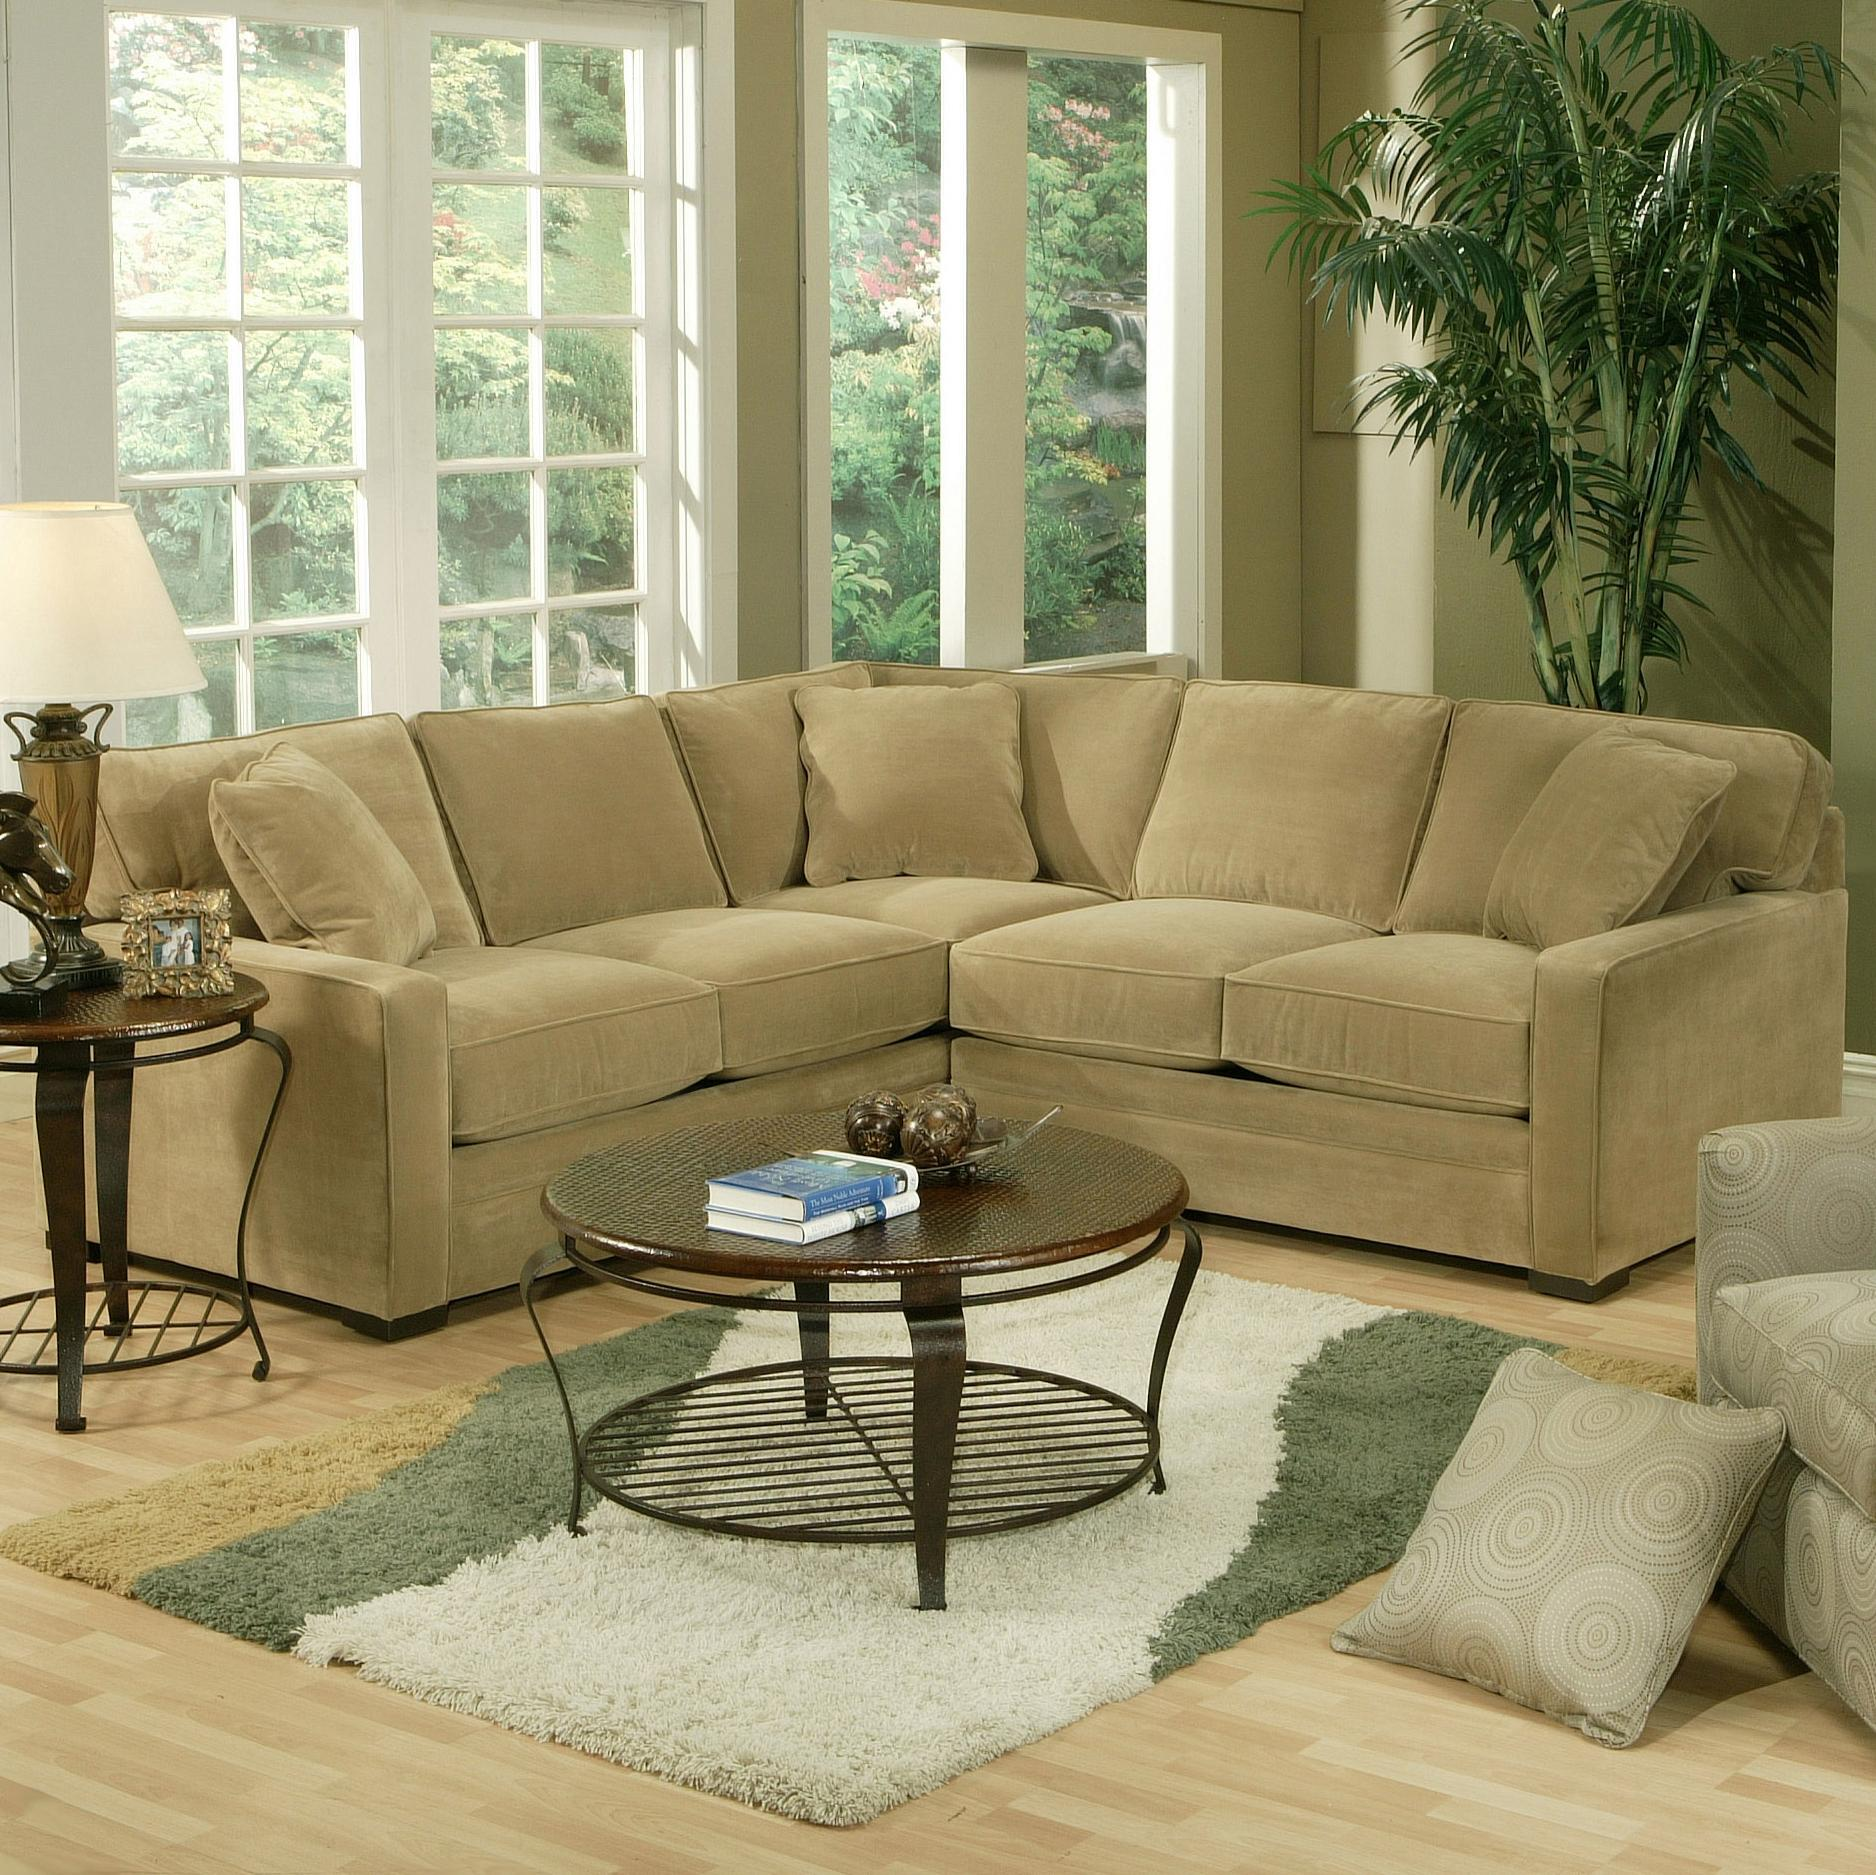 Jonathan Louis Choices   Juno Sectional Sofa   Item Number: 412 32L+25R